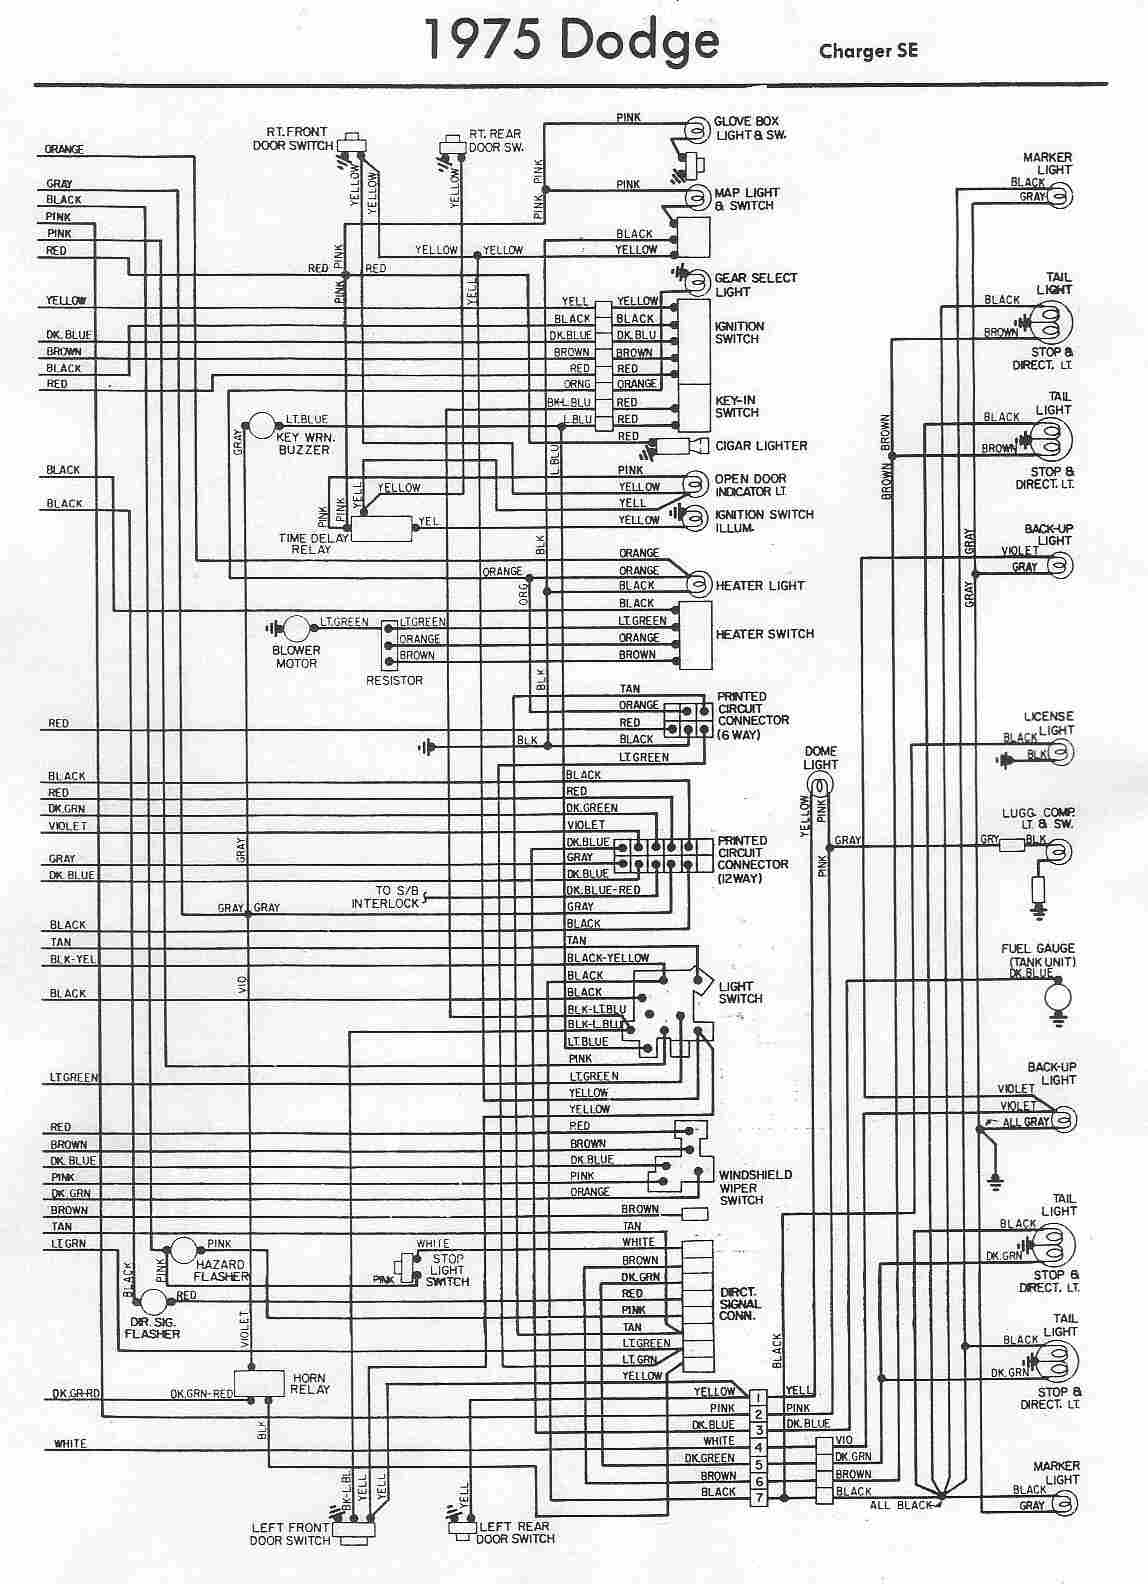 dodge car manuals pdf fault codes dtc 1998 plymouth voyager fuse box diagram [ 1148 x 1584 Pixel ]